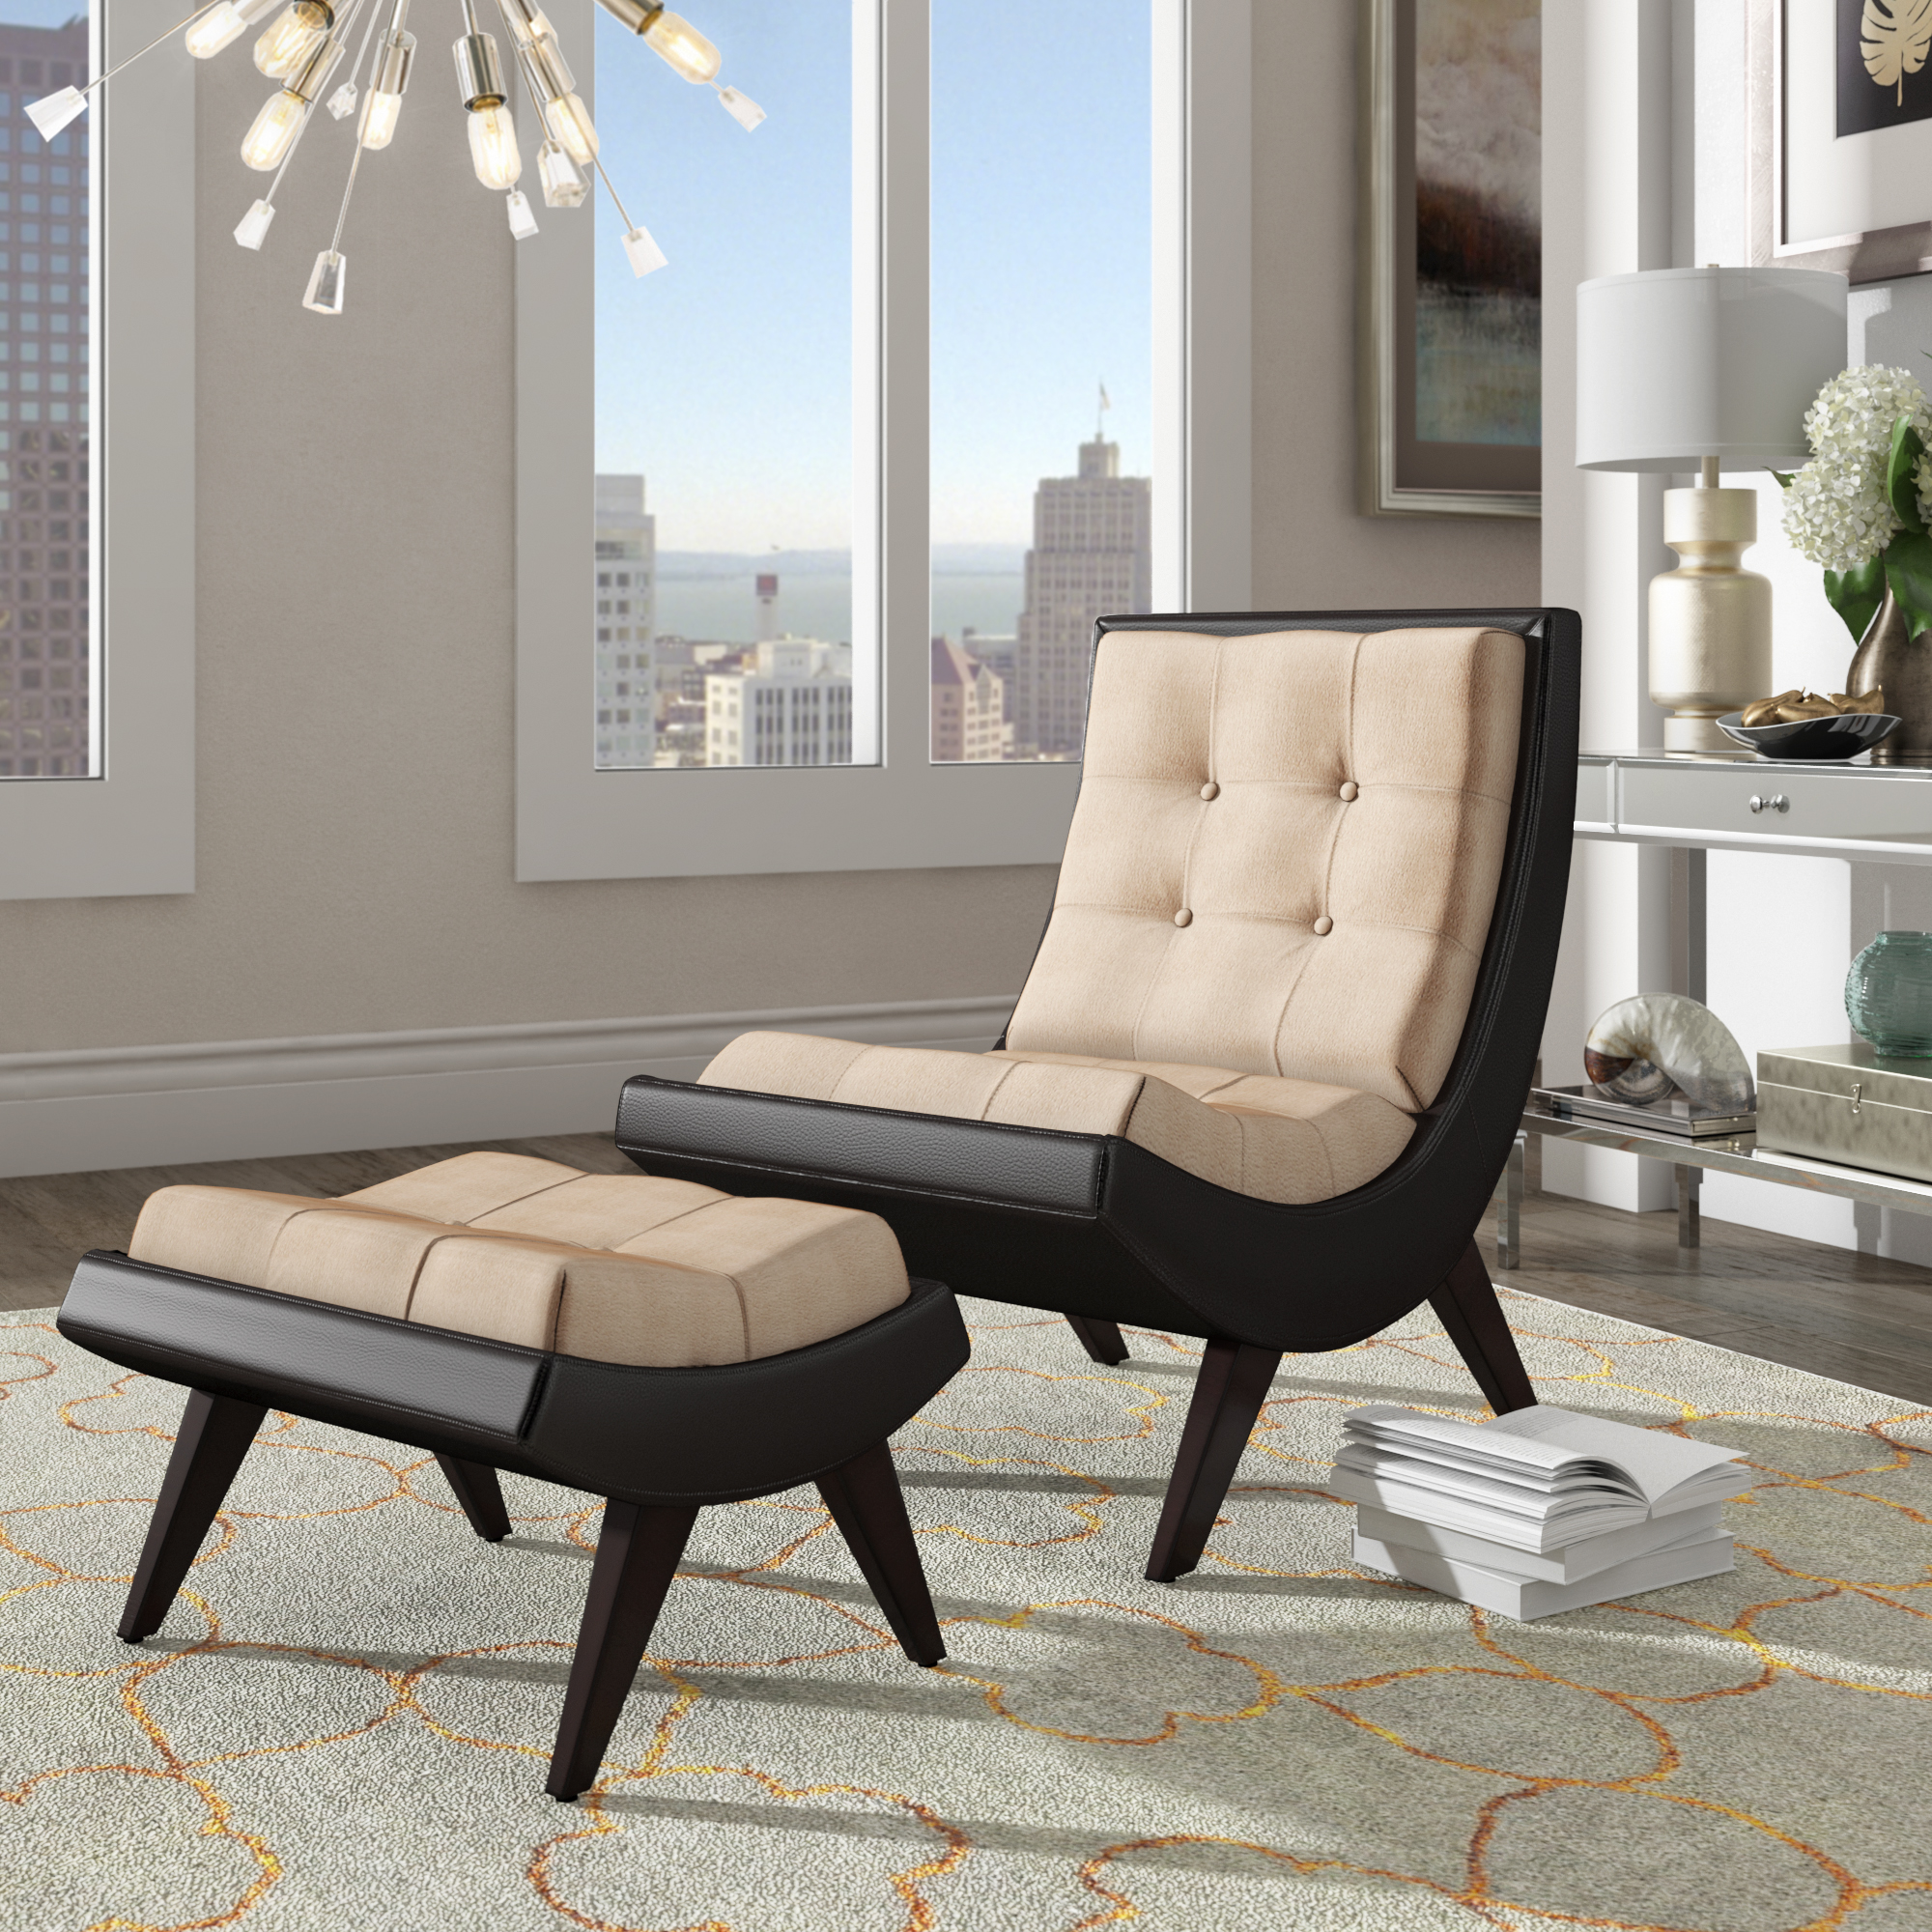 Weston Home Tufted Occasional Chair and Ottoman, Taupe